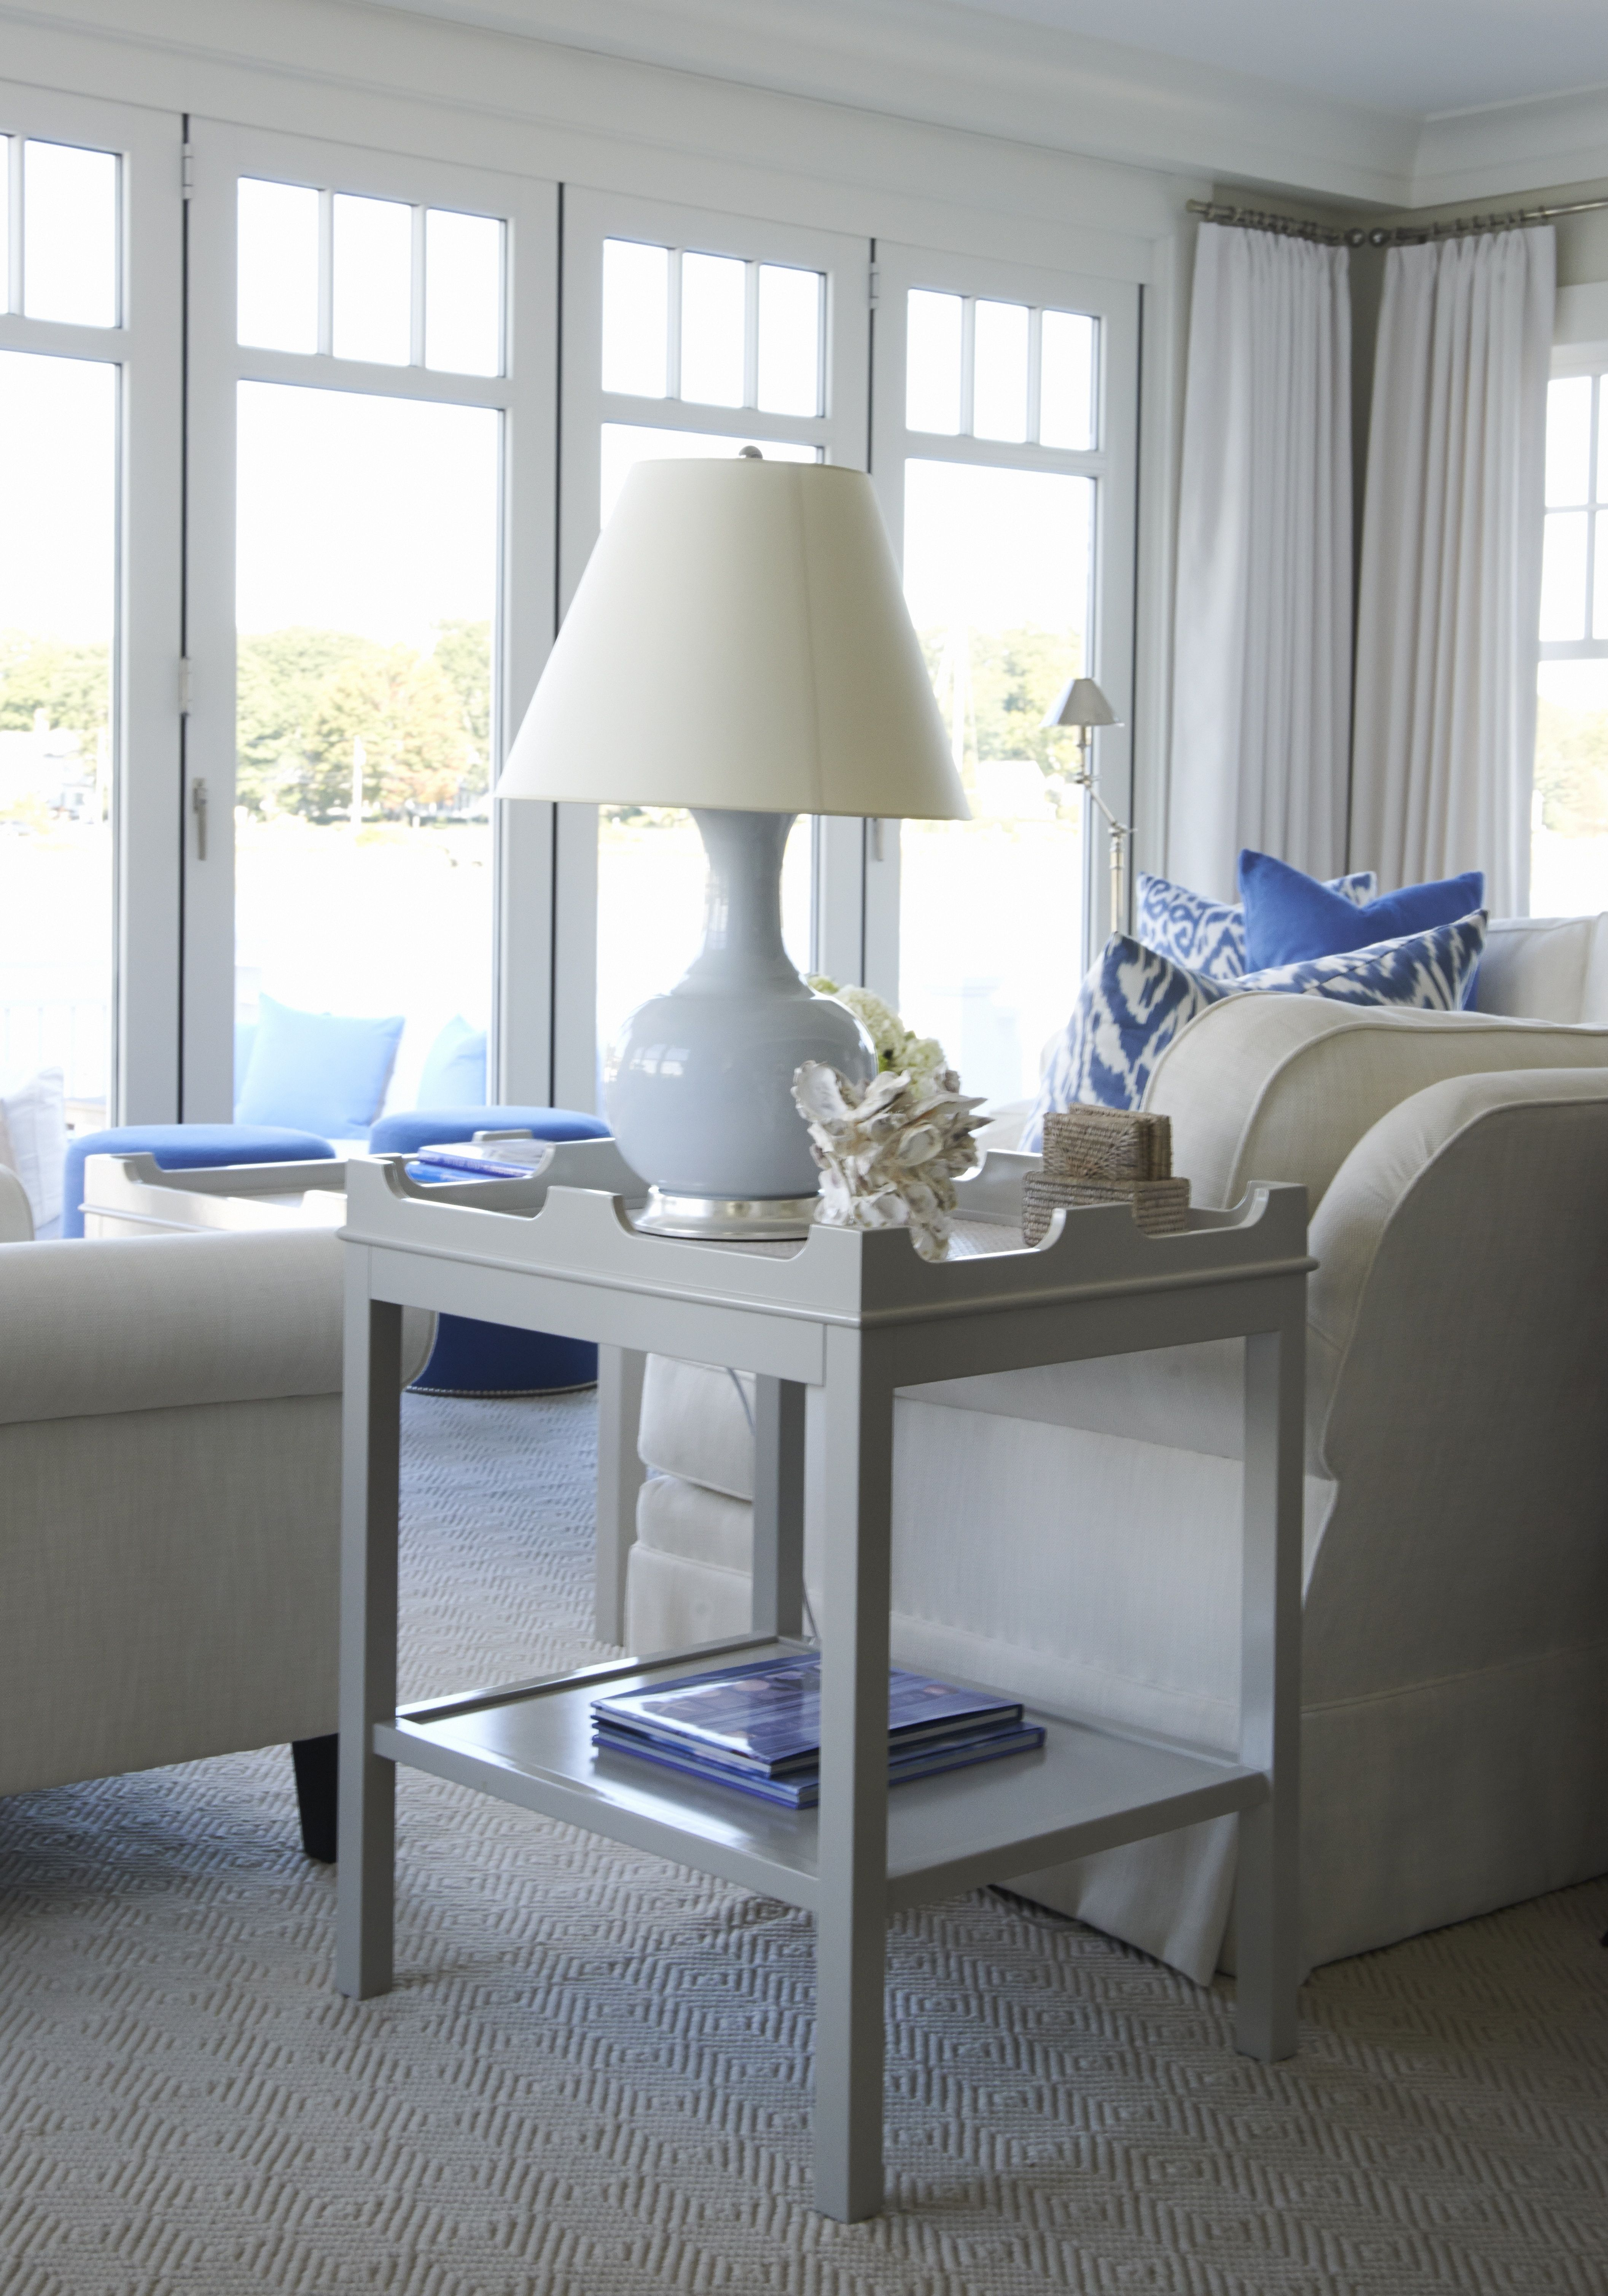 Rooms By Design Furniture Store: Oomph Edgartown Side Table. Always The Right Choice